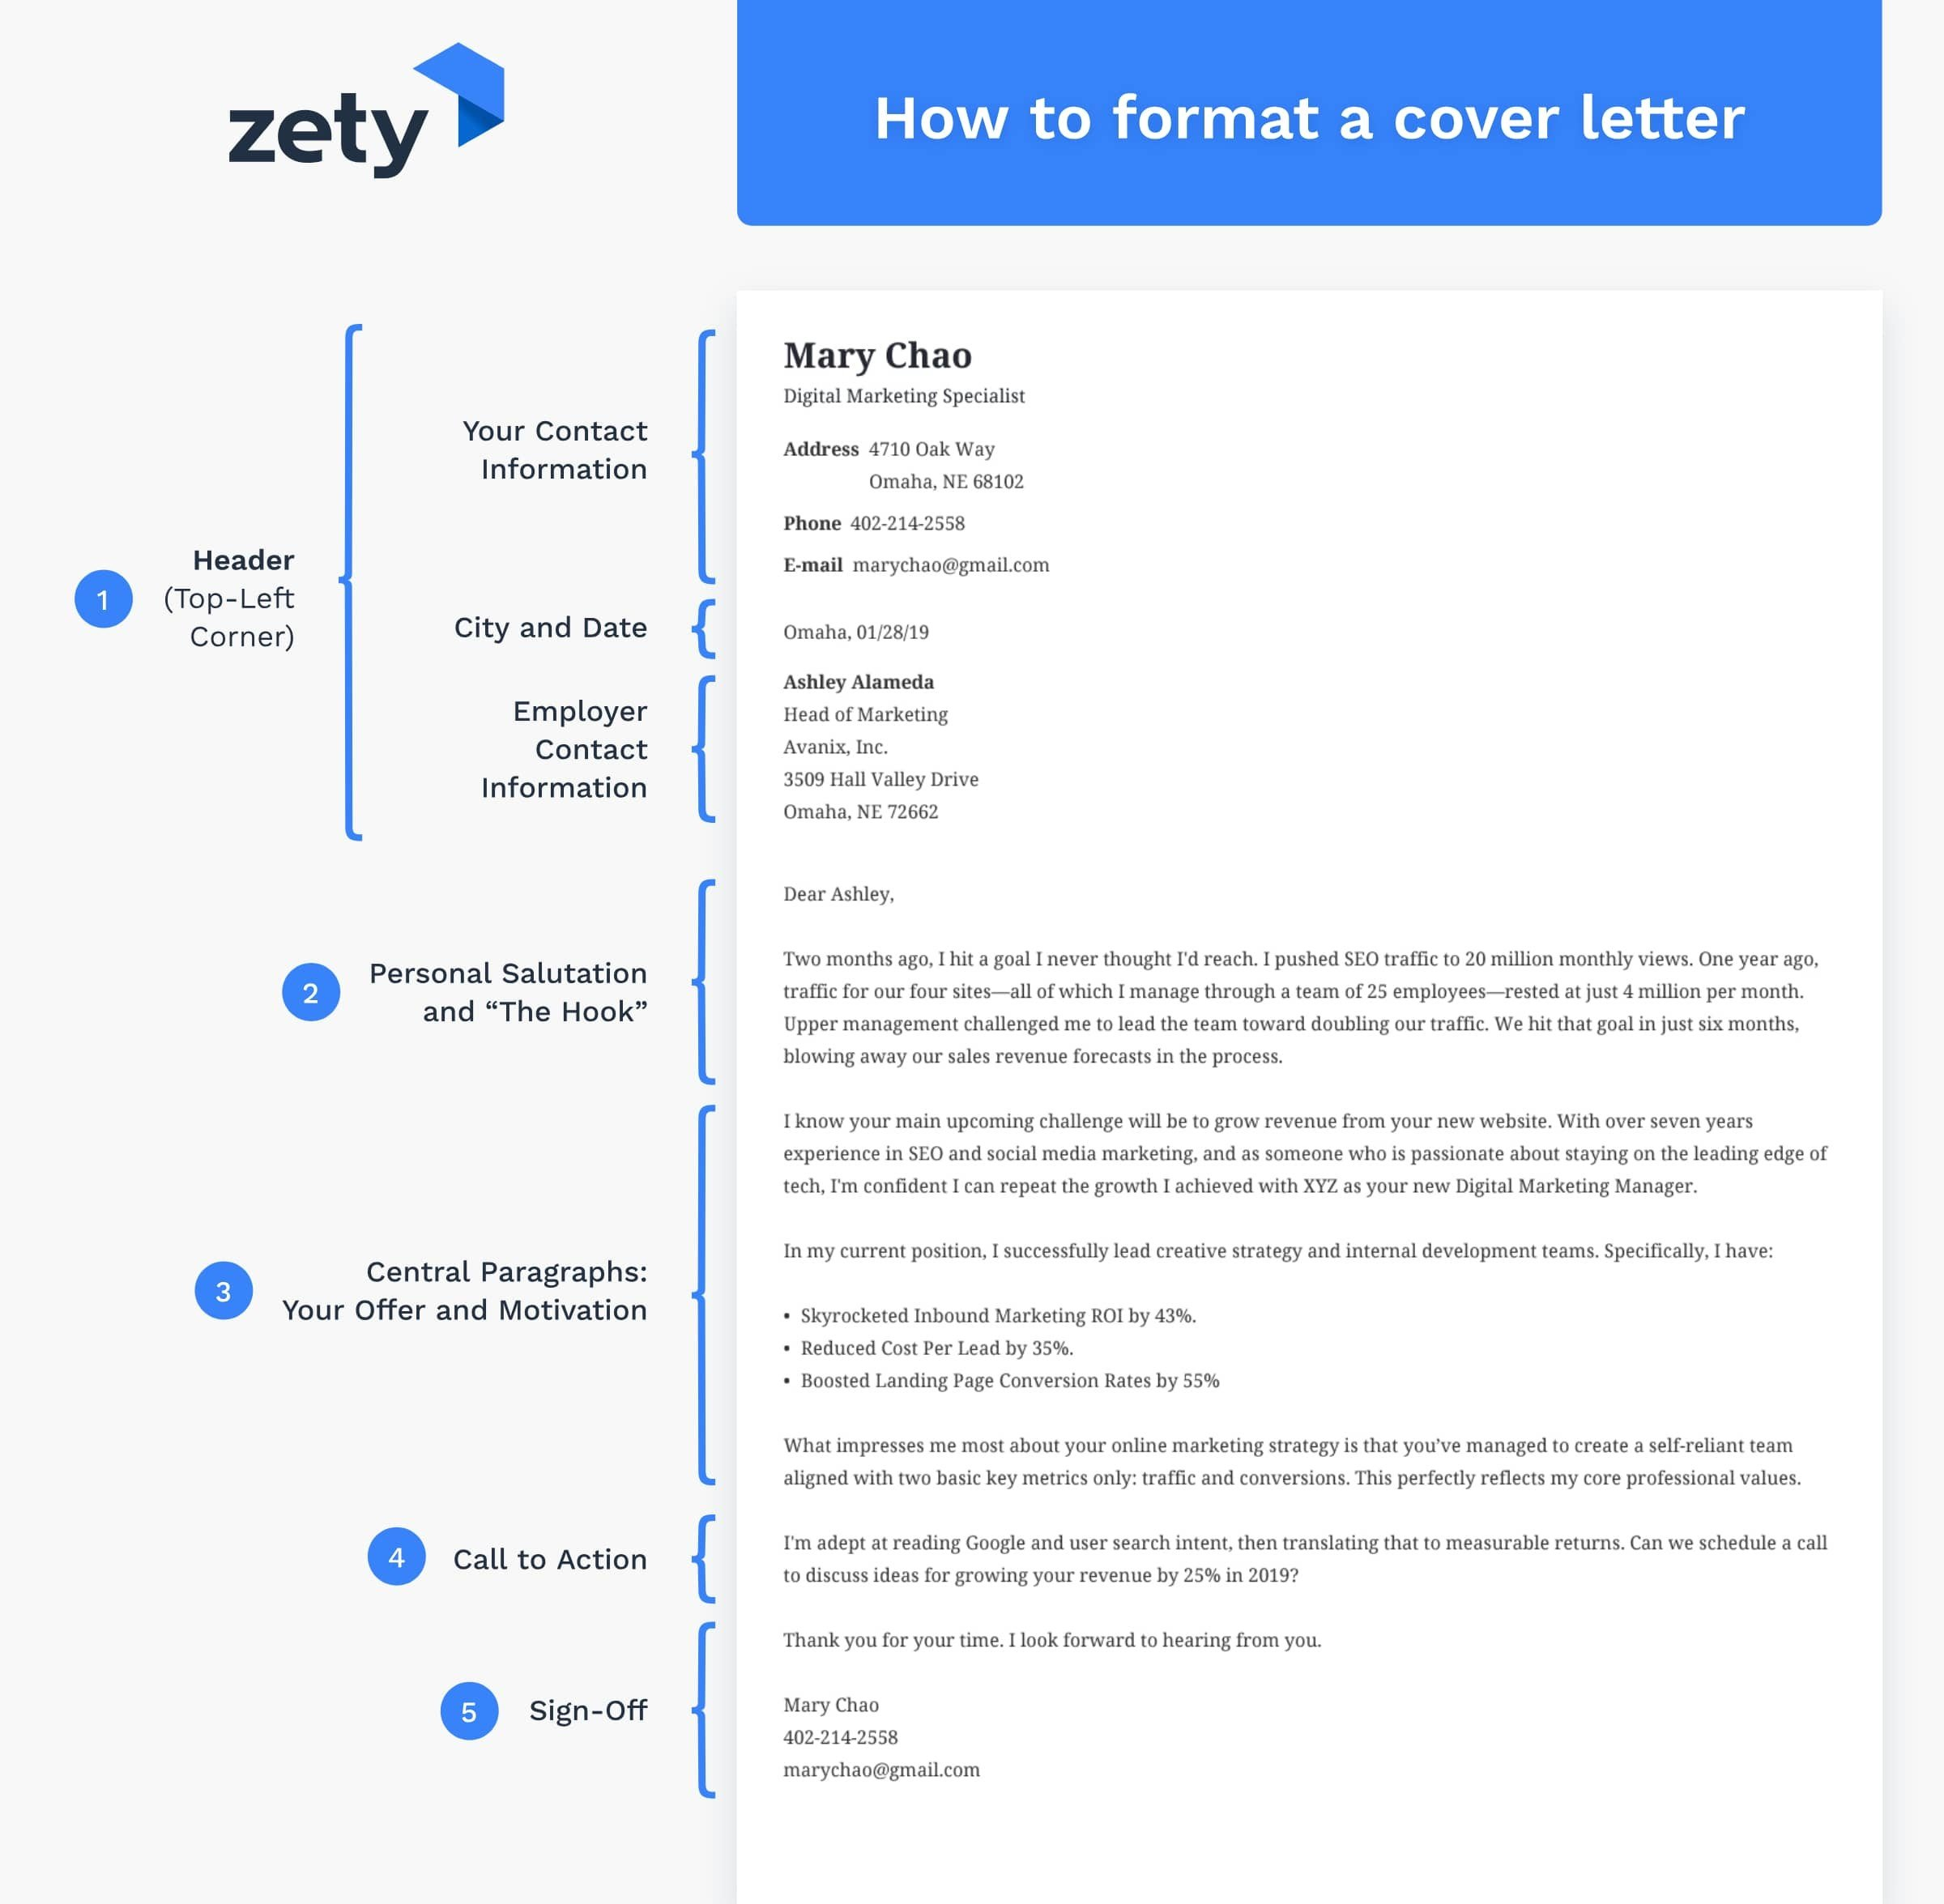 Electronic Cover Letter Format Cover Letter Format Templates Ready To Use Layouts 20 Samples